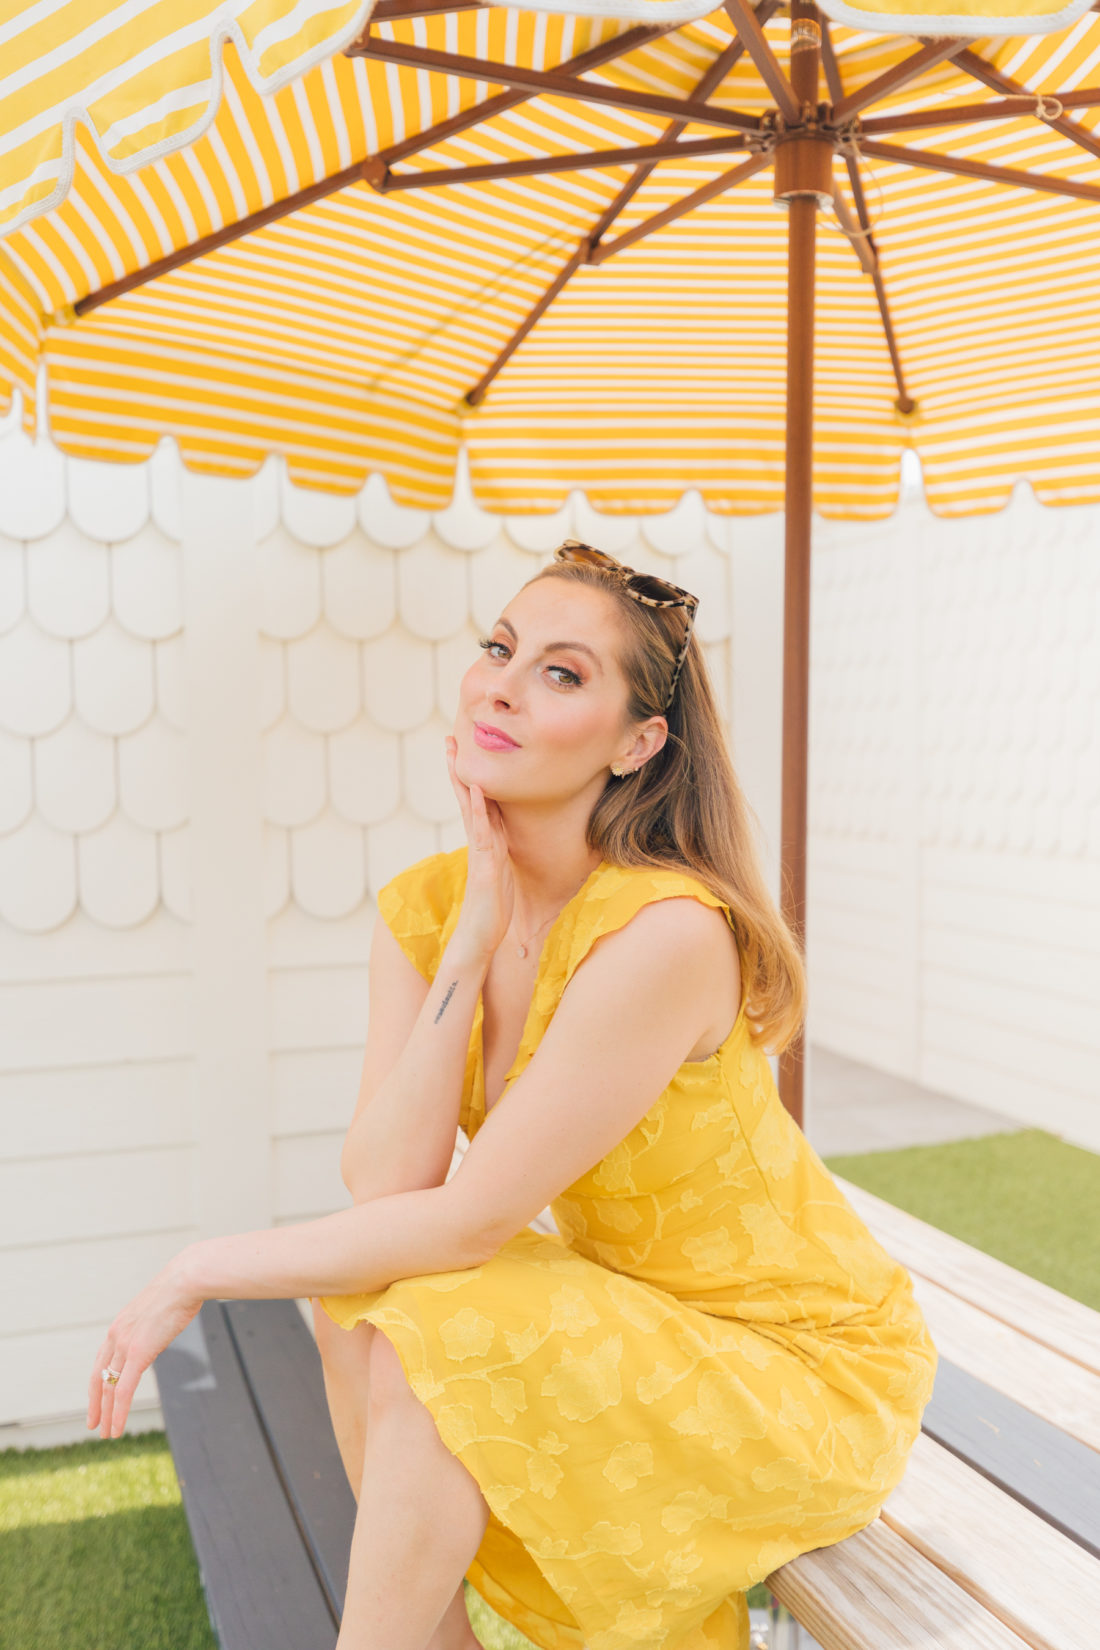 Eva Amurri Martino wears a bright yellow dress next to a yellow striped umbrella